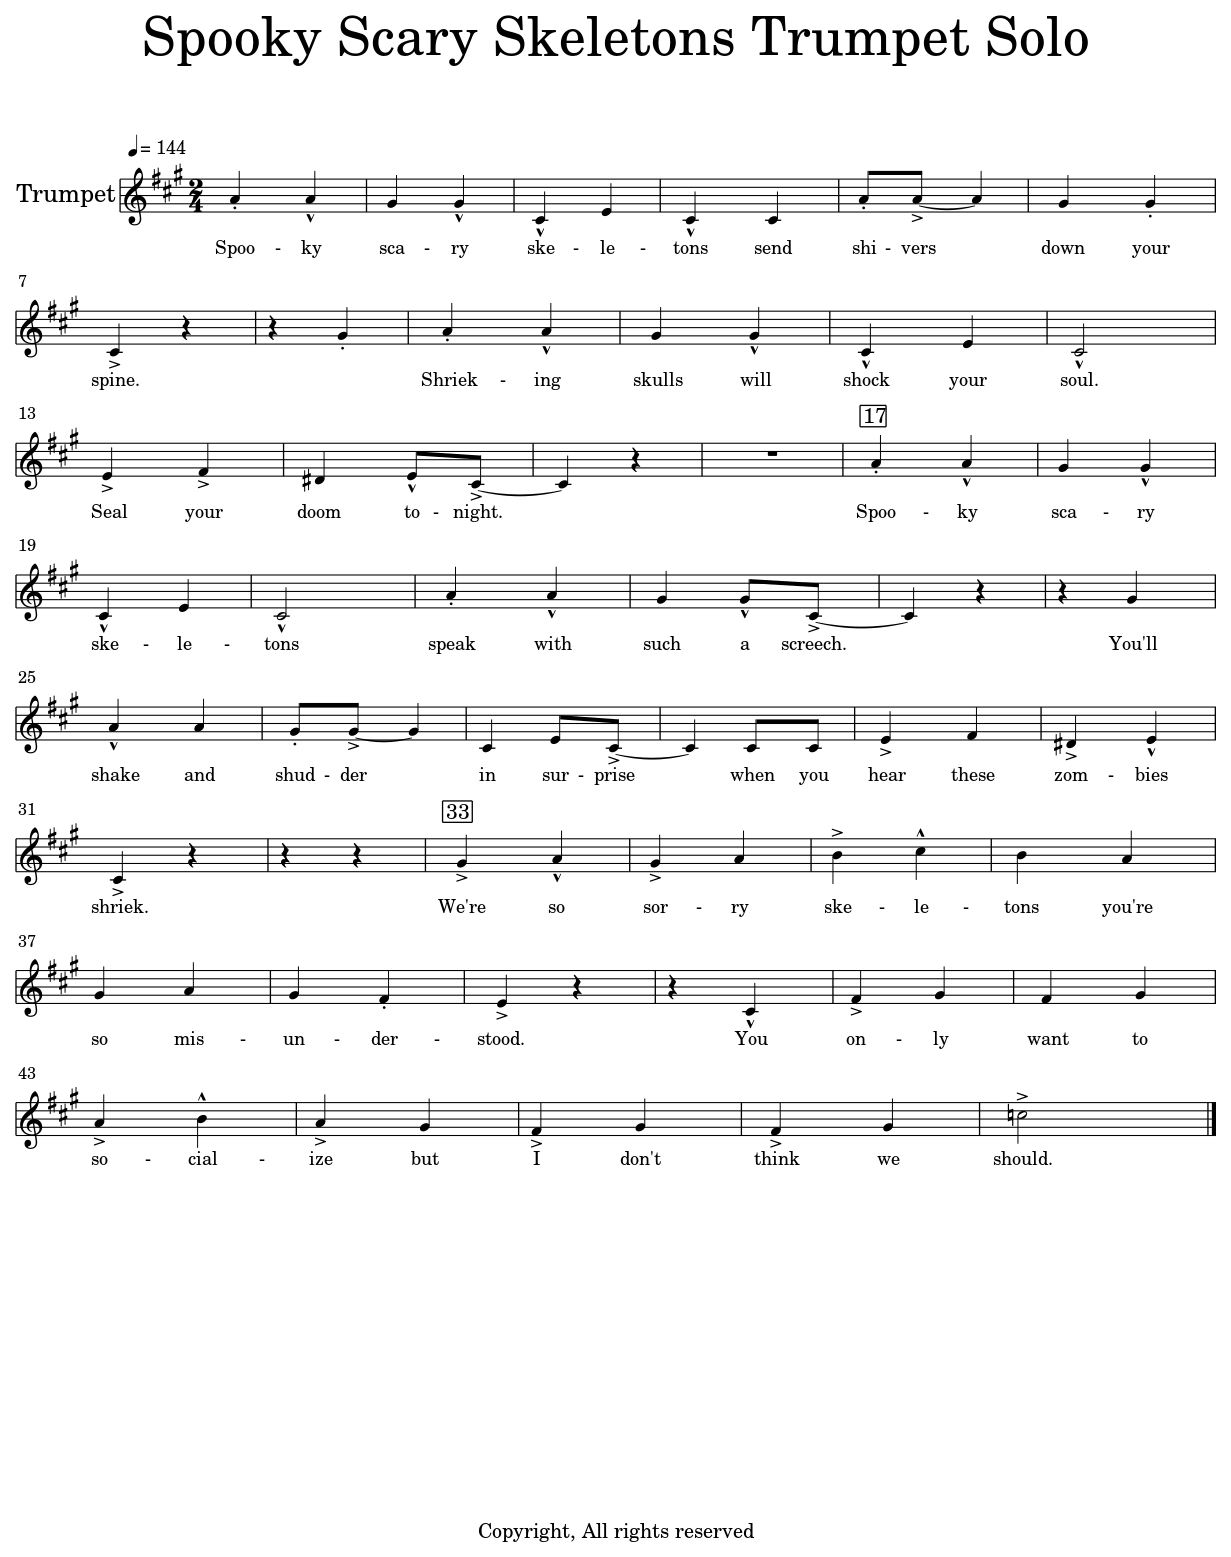 Spooky Scary Skeletons Trumpet Solo - Sheet music for Trumpet